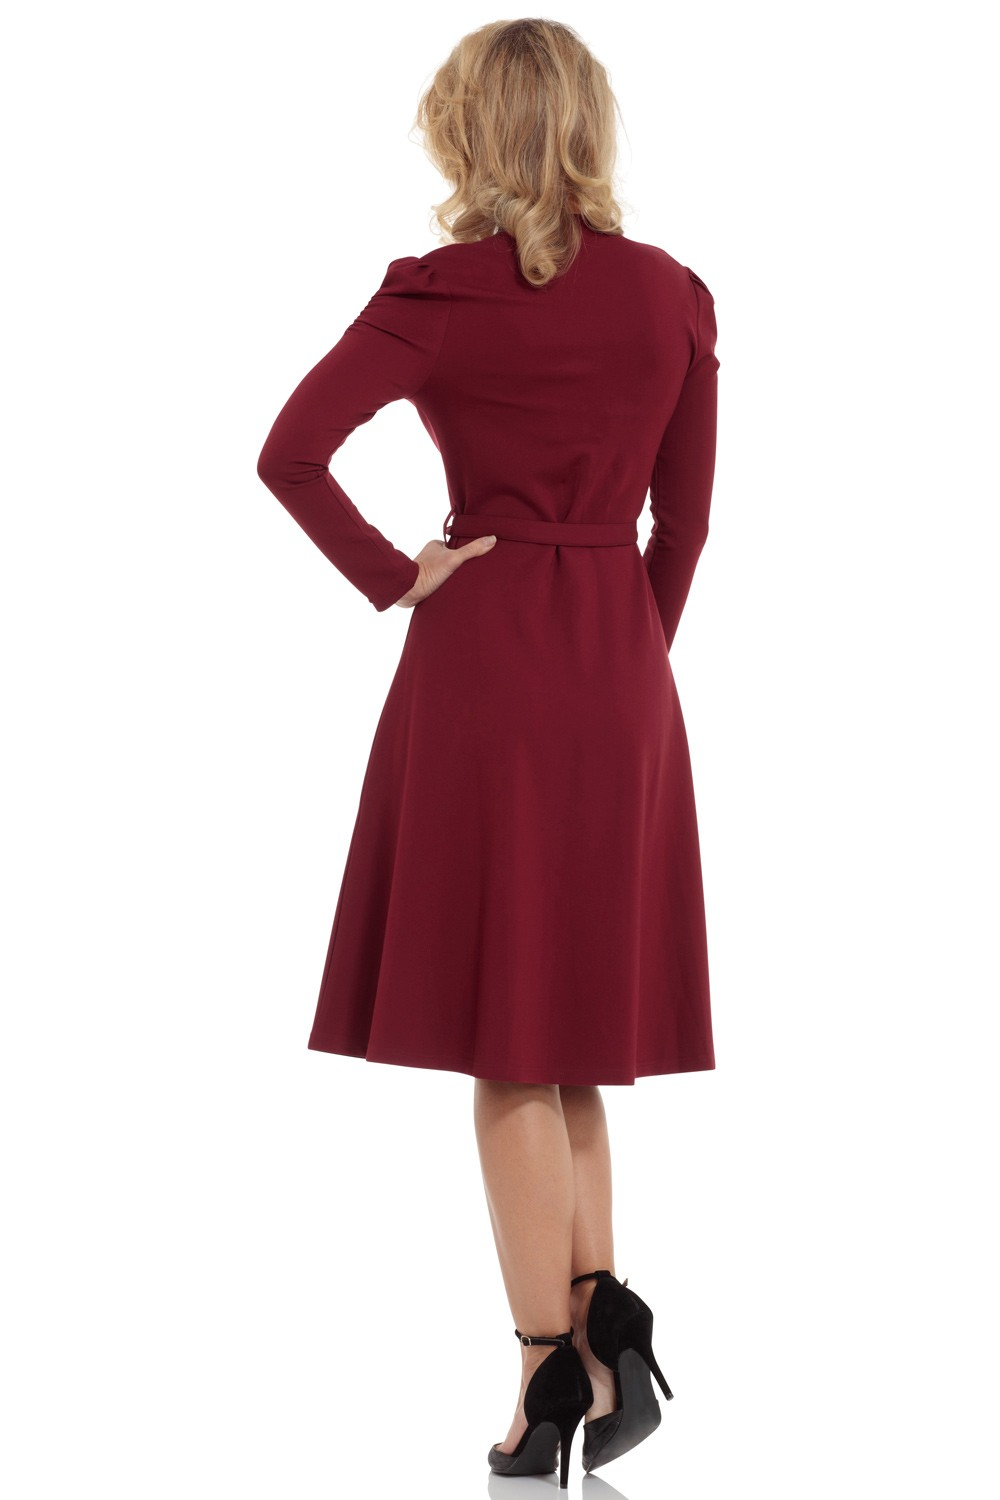 Vixen Burgundy Red Dita 1950s Swing Dress